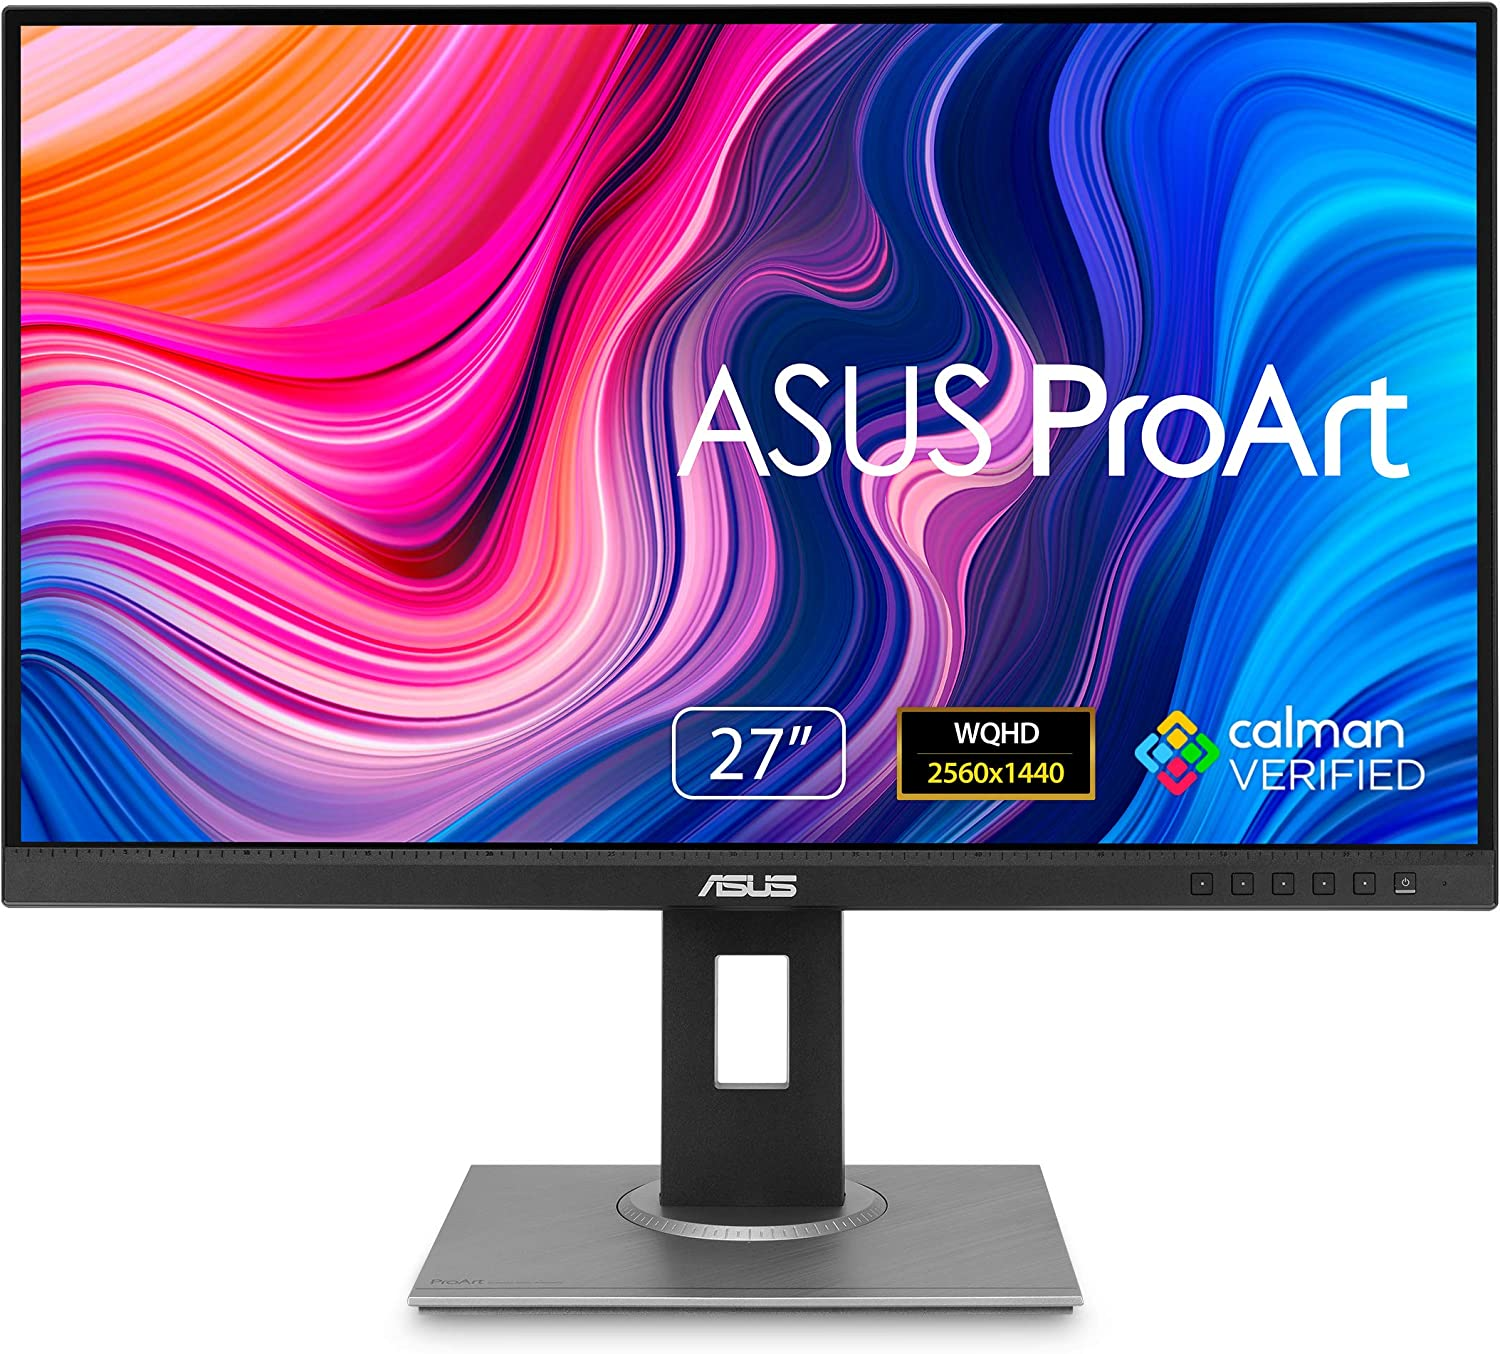 ASUS ProArt PA278QV color accurate monitor under 300 dollars